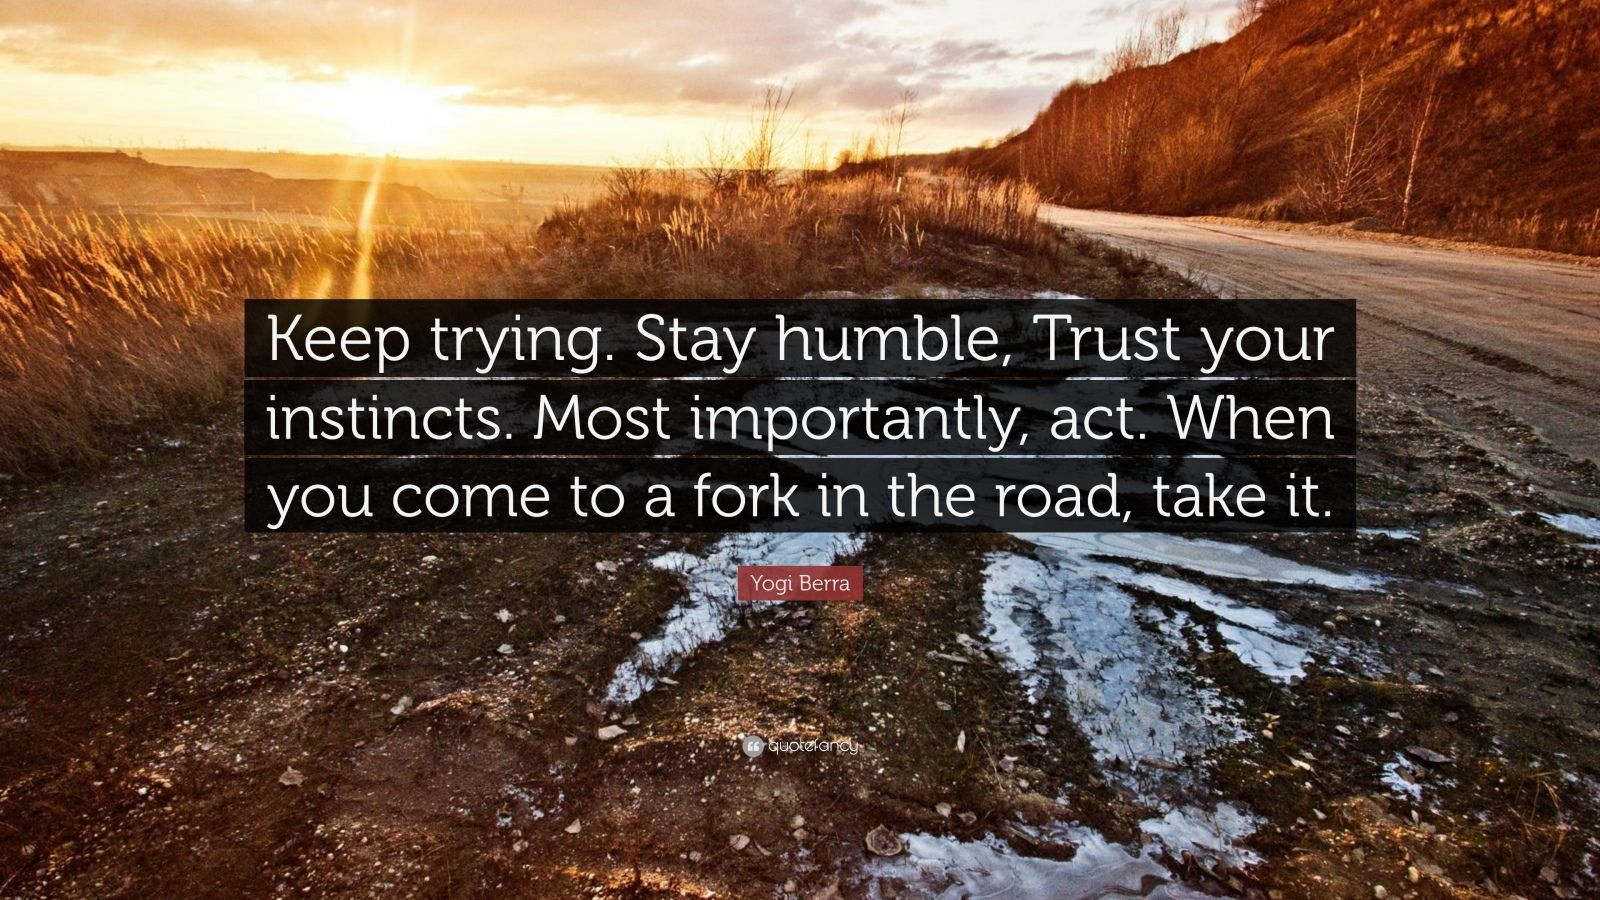 "Humble Quotes: ""Keep trying. Stay humble, Trust your instincts. Most importantly, act. When you come to a fork in the road, take it."" — Yogi Berra"